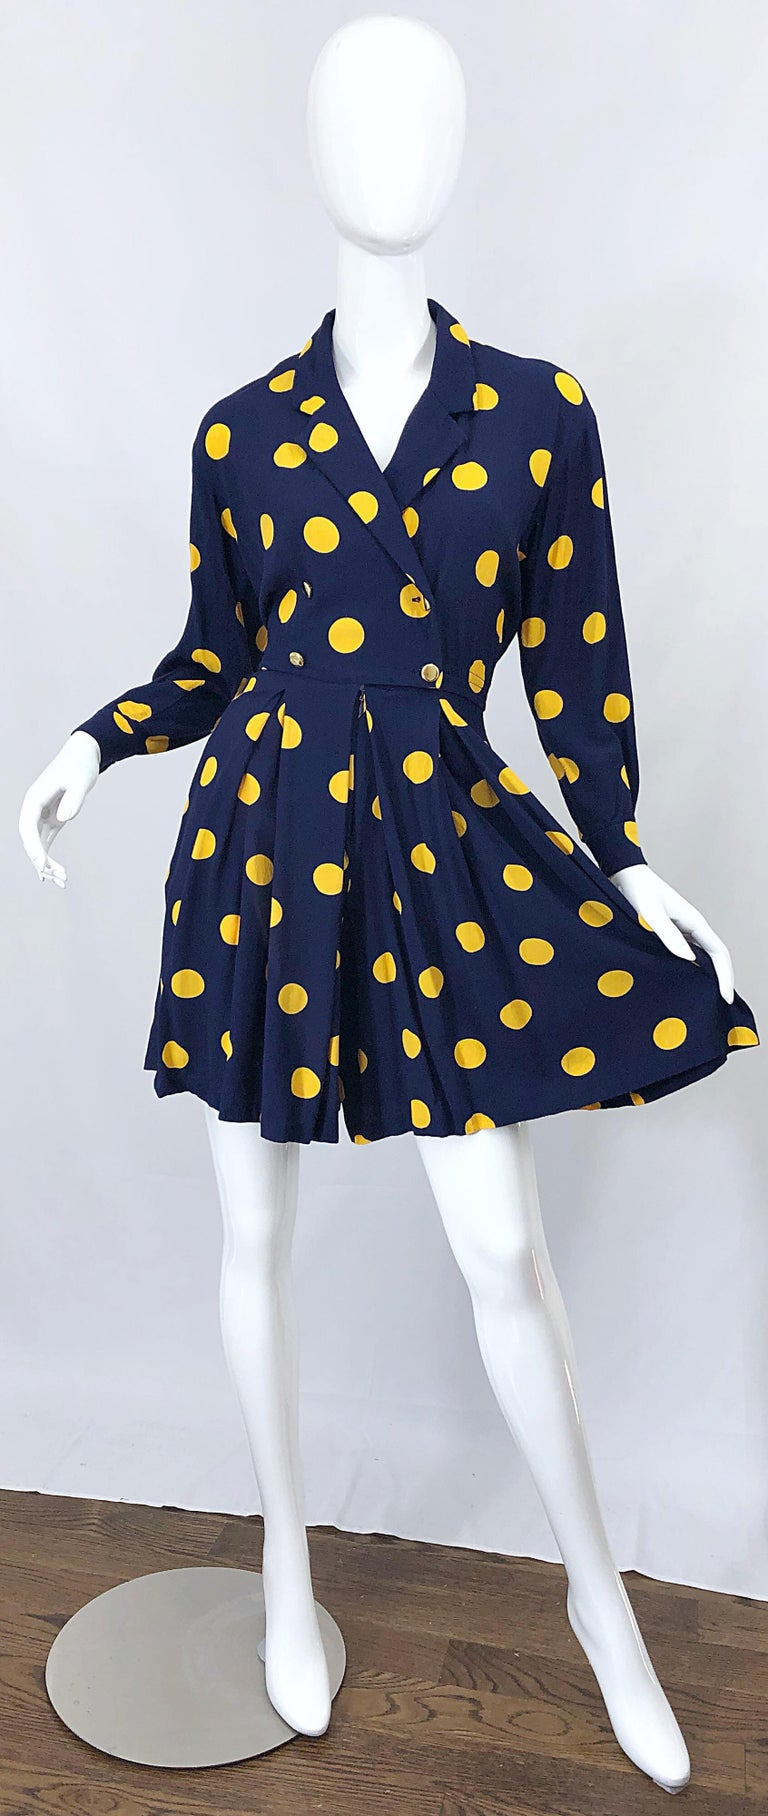 Chic late 80s LIZ CLAIBORNE long sleeve navy blue and marigold yellow polka dot one piece romper! Features a fitted bodice, with forgiving wide legs. Double breasted fit, with gold buttons on the front and at each sleeve cuff. POCKETS at each side